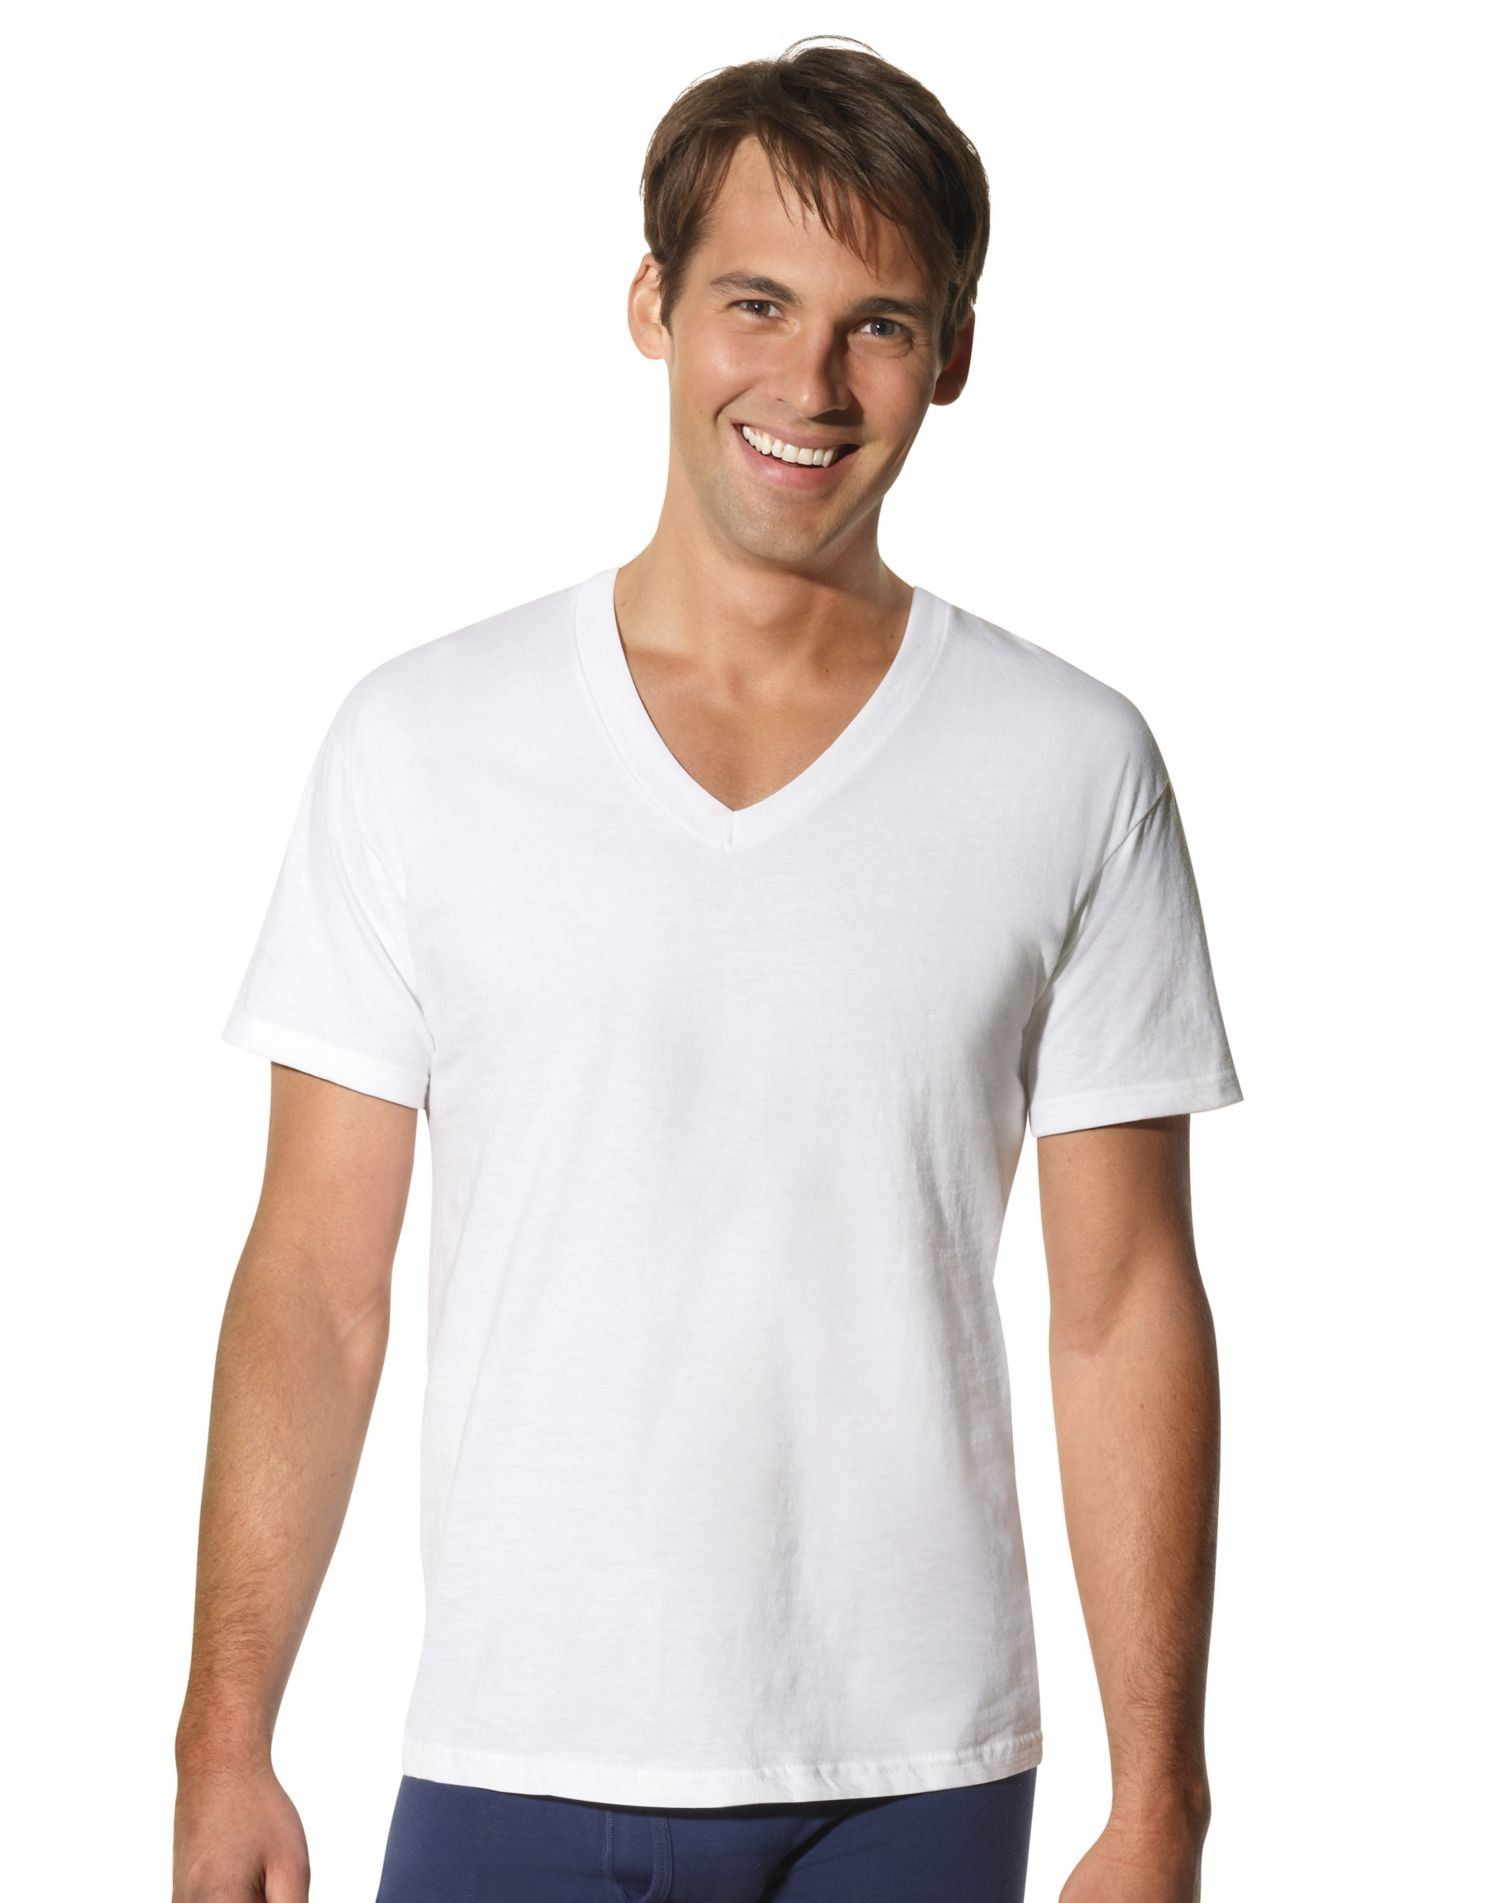 Hanes Men's Big Big & Tall V-Neck Undershirt 3-Pack 115hnt, White, X-Large Tall by Hanes